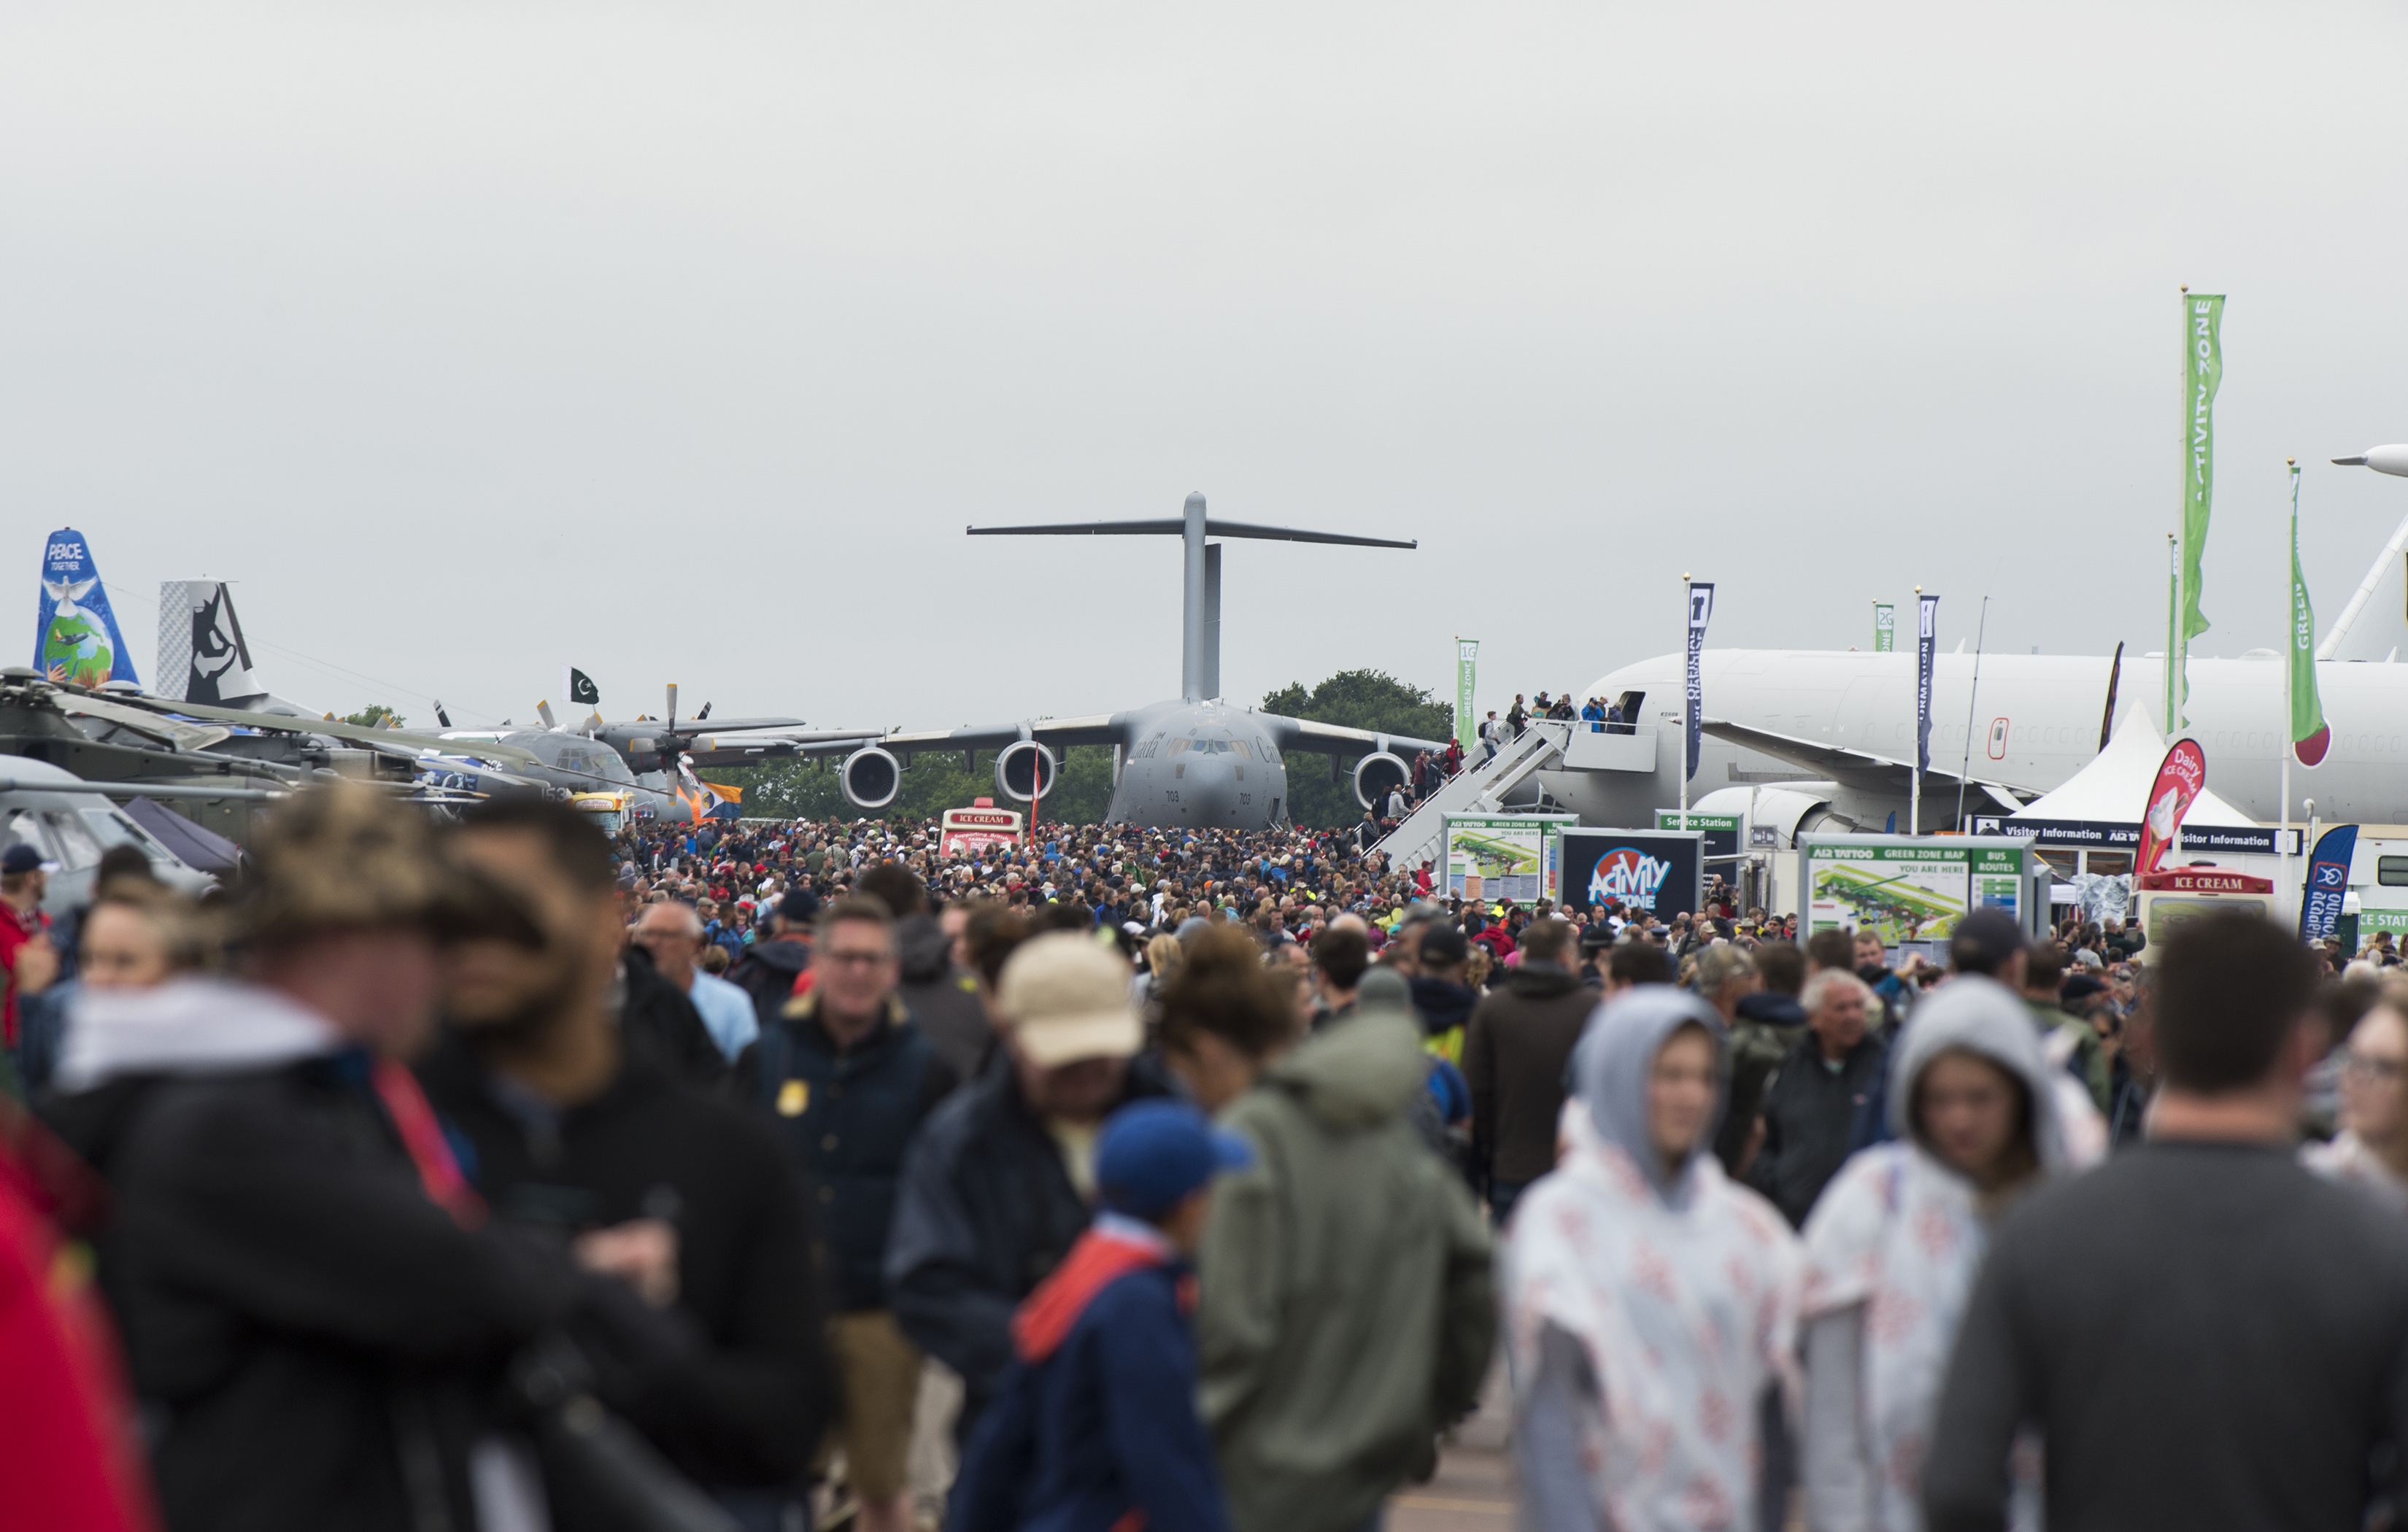 FAIRFORD, United Kingdom – Spectators visit the 2017 Royal International Air Tattoo (RIAT) located at RAF Fairford, United Kingdom, on July 15, 2017. This year commemorates the U.S. Air Force's 70th Anniversary which was highlighted during RIAT by displaying its lineage and advancements in military aircraft. (U.S. Air Force Photo by Tech. Sgt. Brian Kimball)